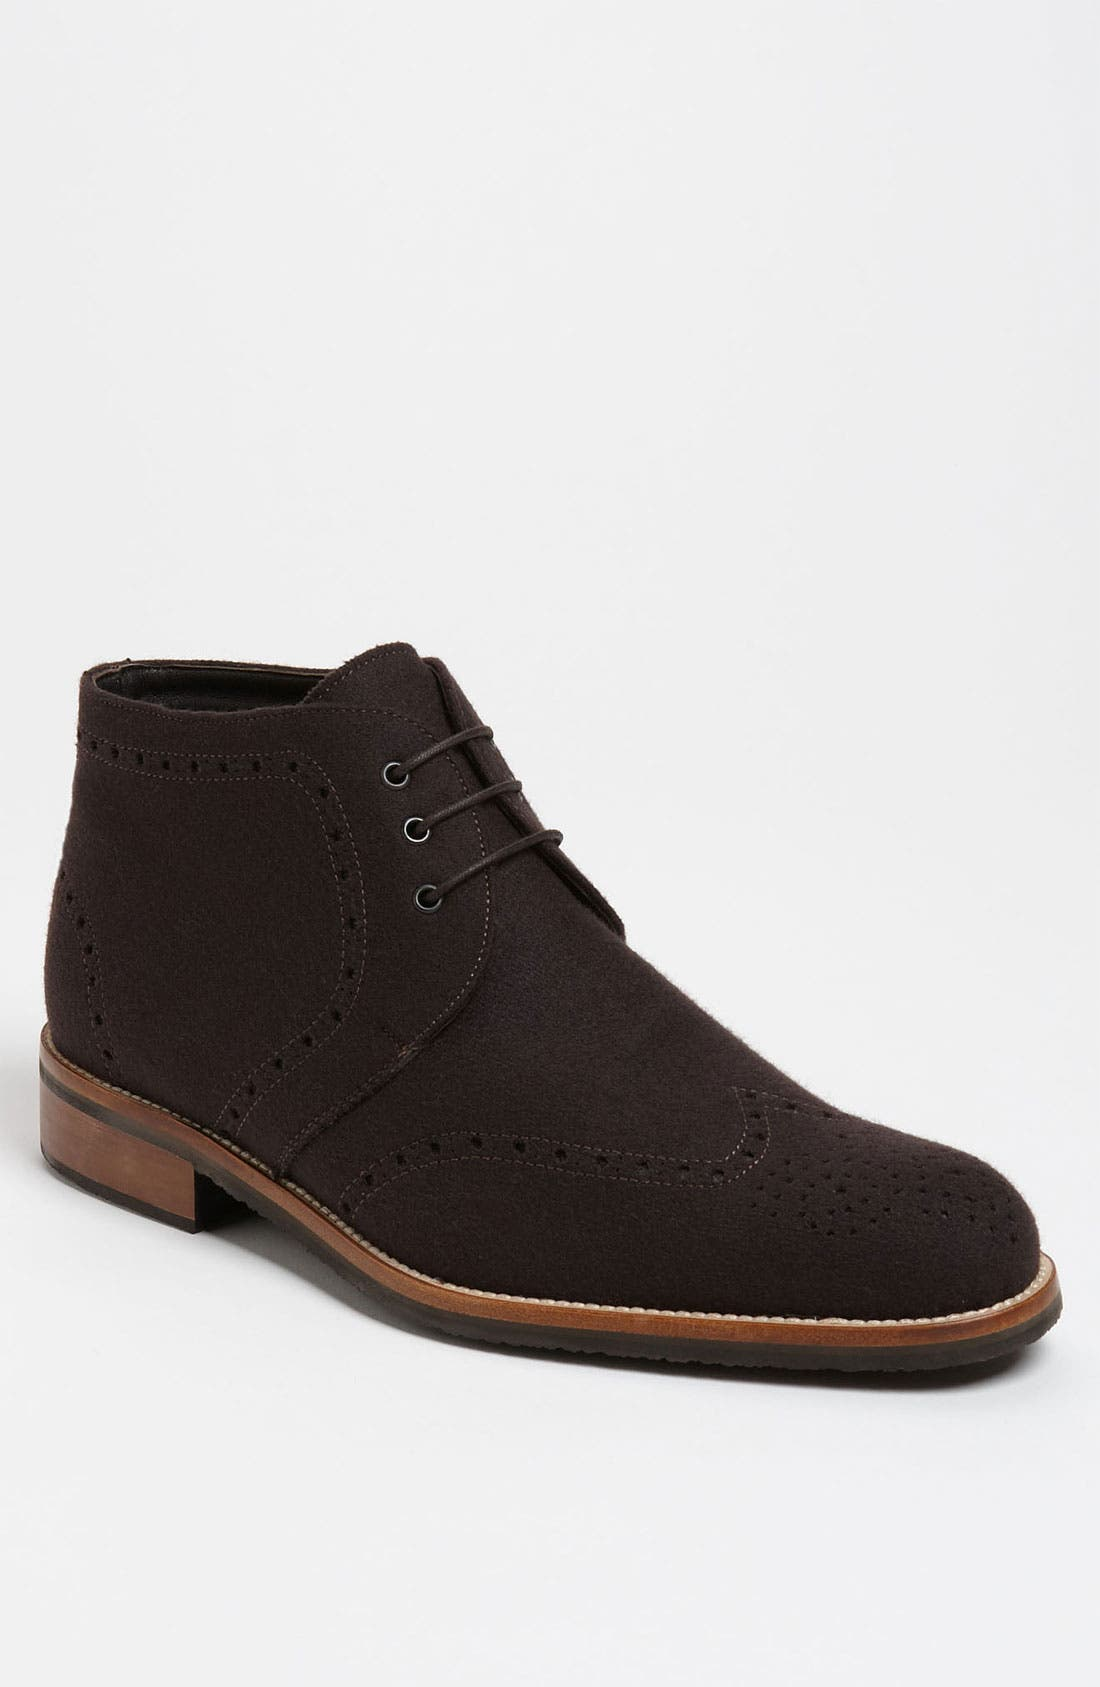 Main Image - Thomas Dean Wool Wingtip Chukka Boot